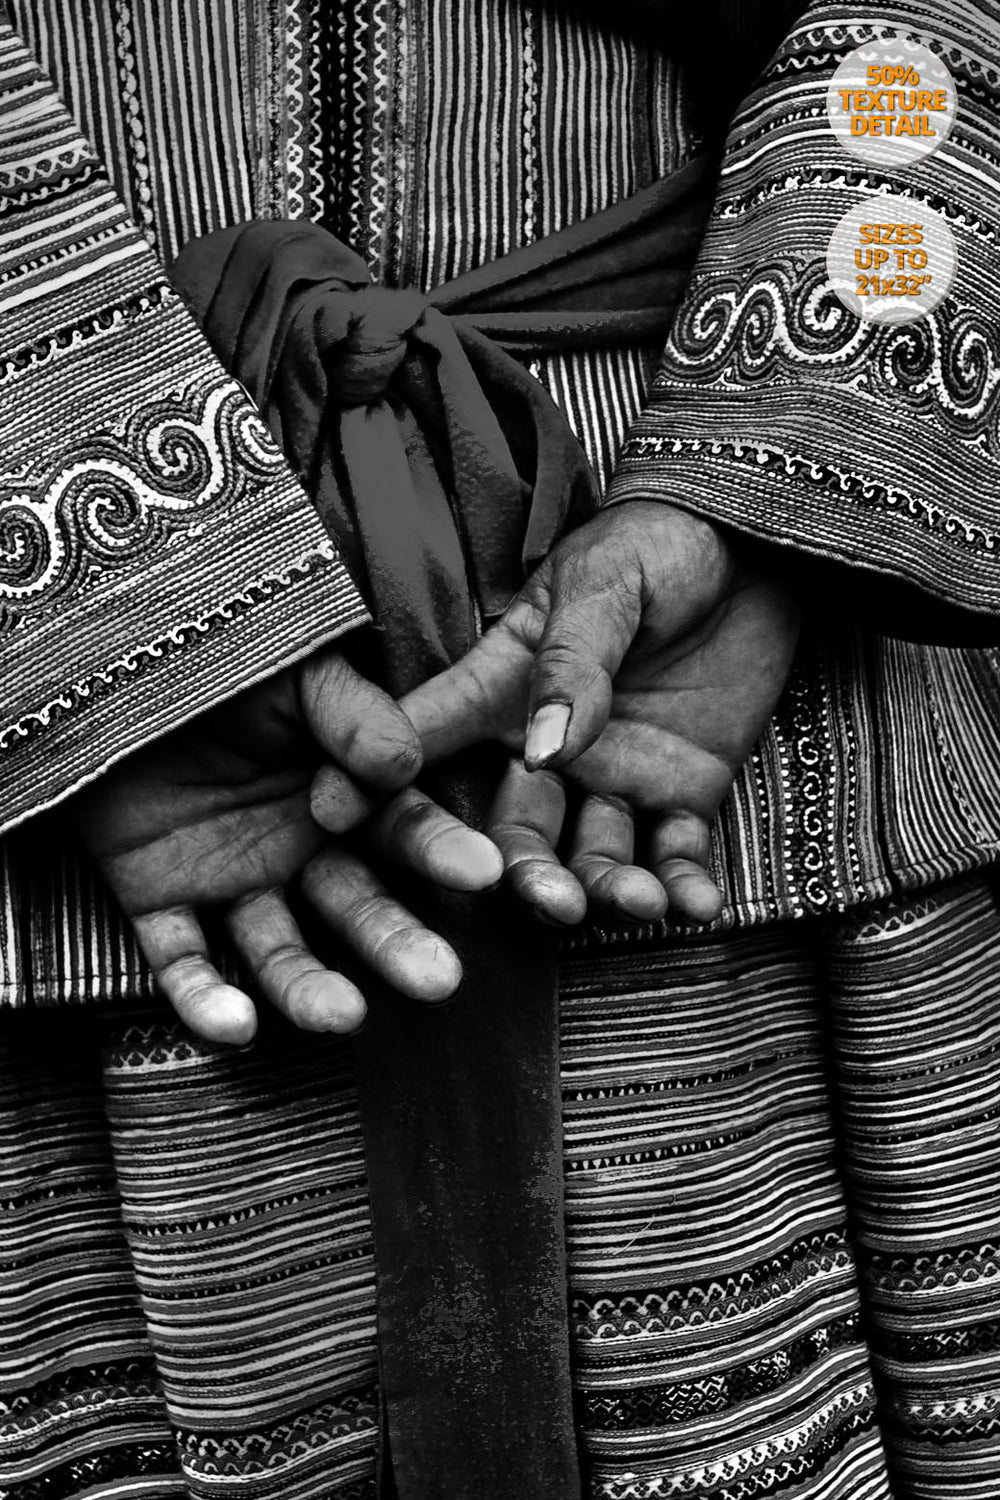 Detail of hands of a Hmong woman, Bac Ha, Vietnam.